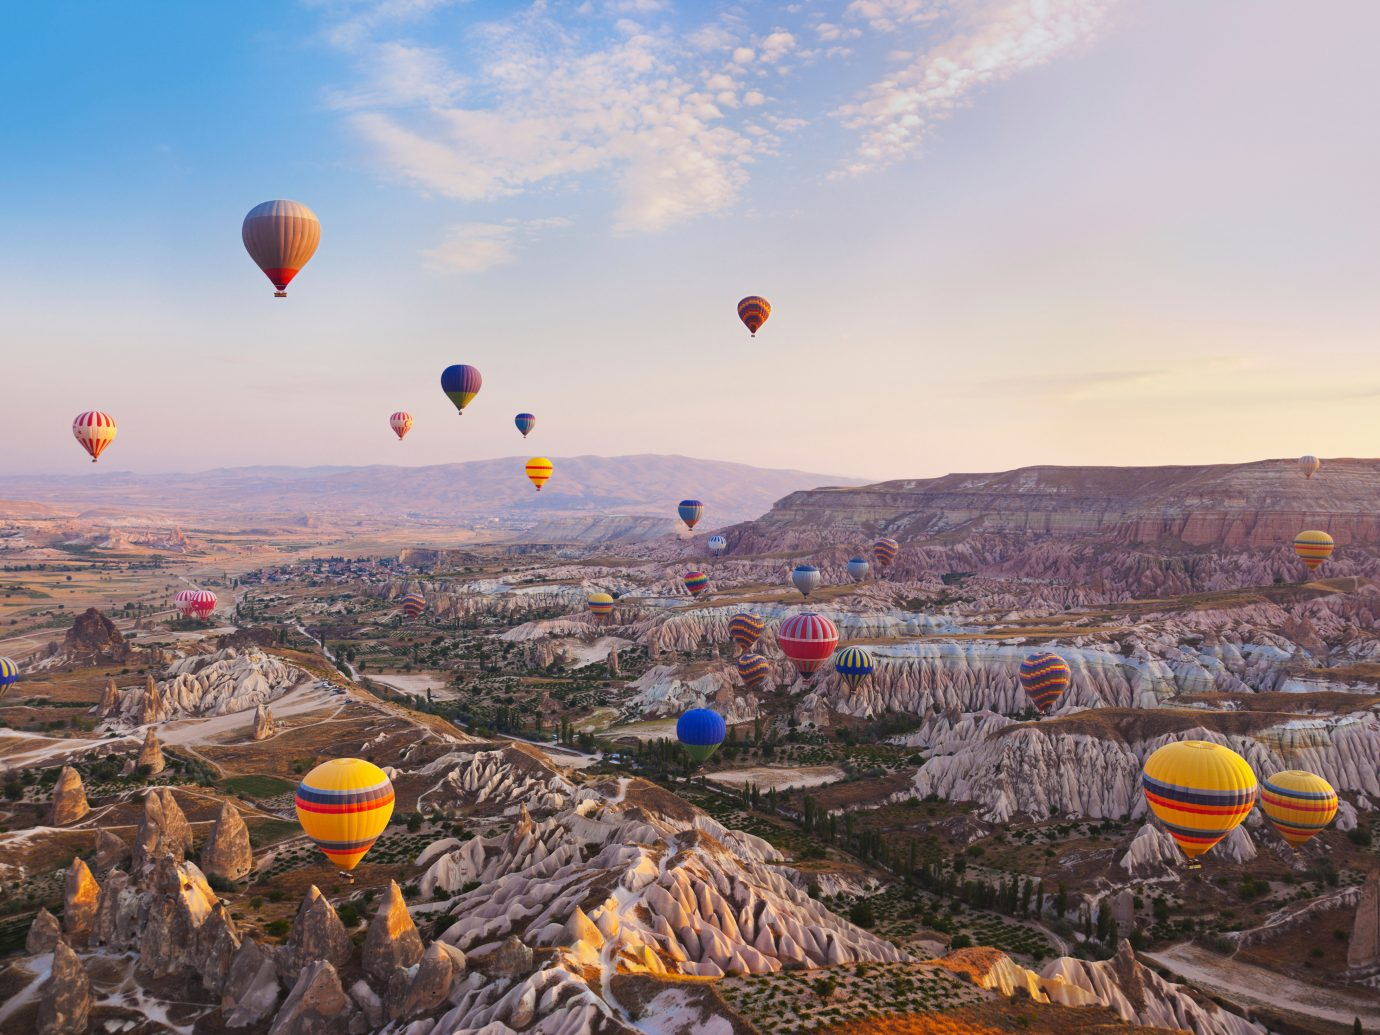 Luxury Outdoors Resort Scenic views Trip Ideas sky aircraft balloon transport hot air ballooning Hot Air Balloon outdoor vehicle atmosphere of earth toy extreme sport Raft several